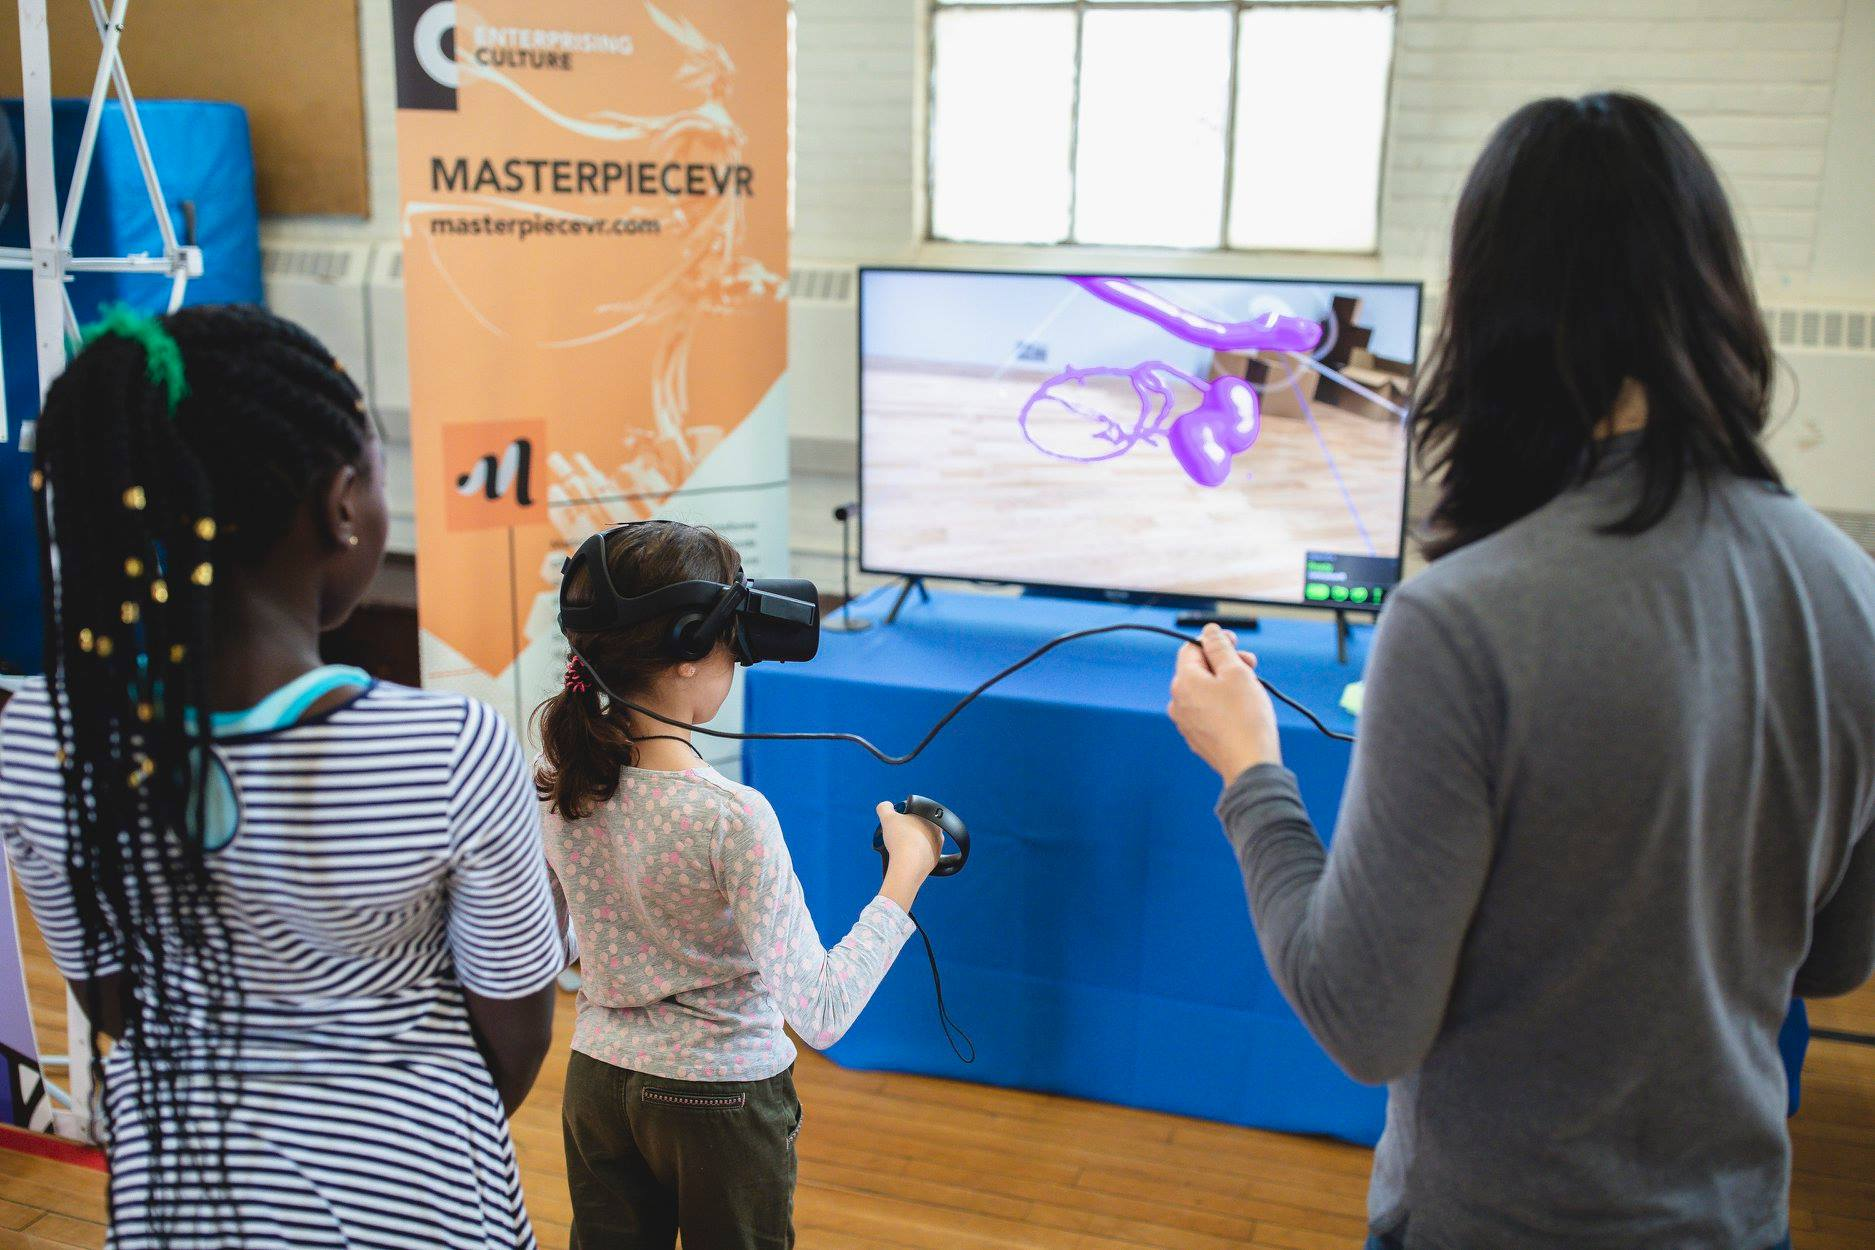 A girl stands in front of a tv screen while wearing a VR headset. Another girl stands behind her and a man stands next to them holding a cord connected to the headset.